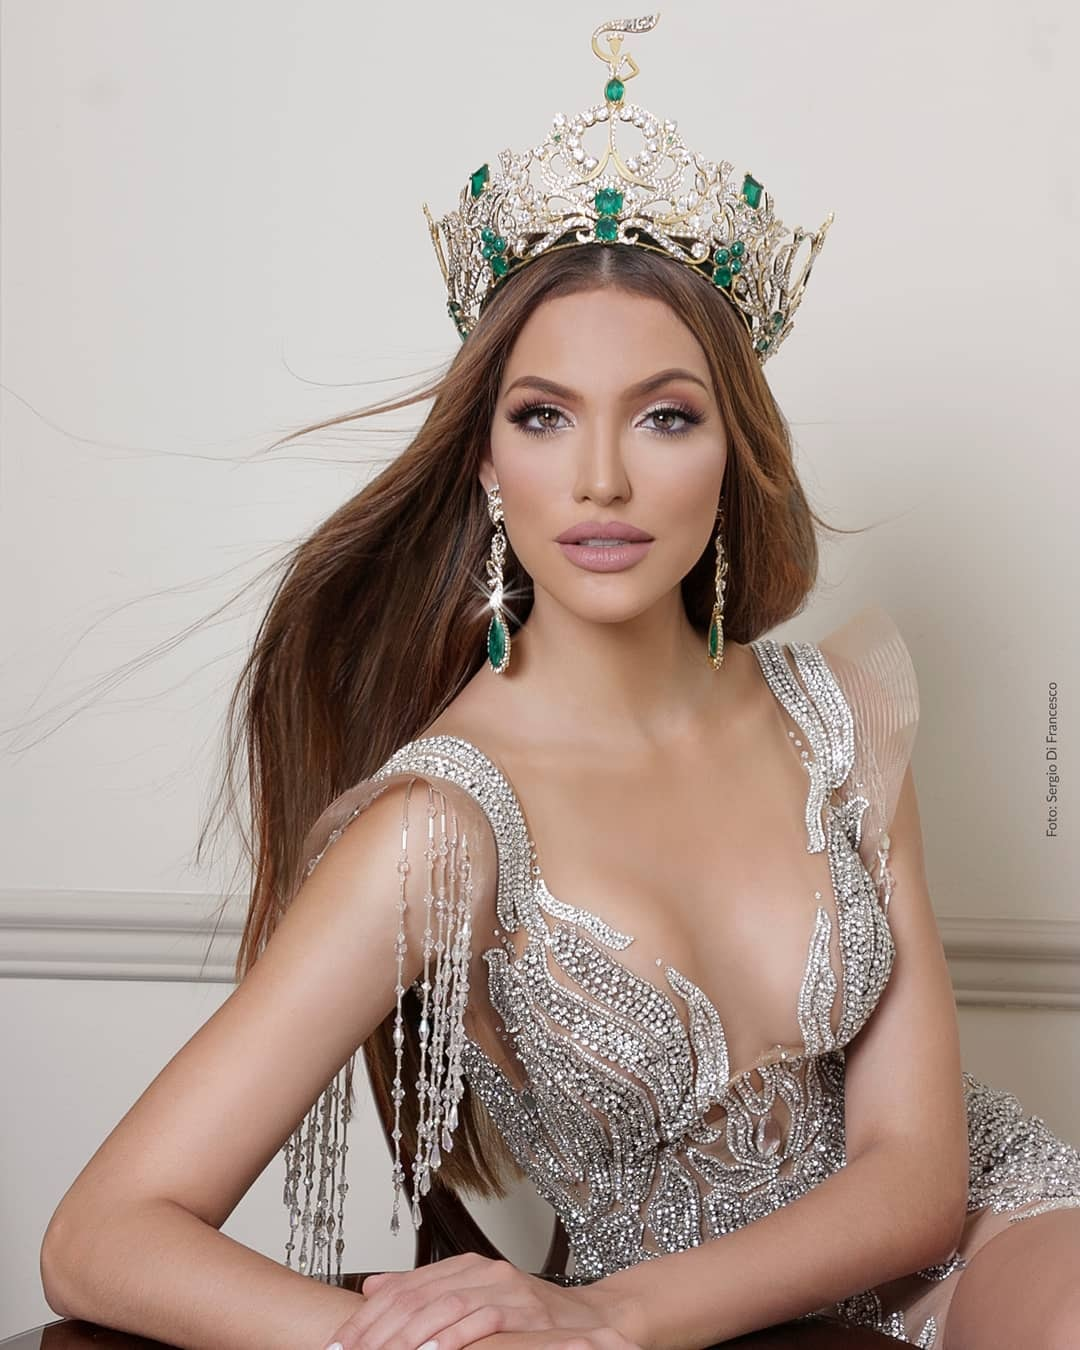 Official Thread of MISS GRAND INTERNATIONAL 2019 - Lourdes Valentina Figuera - VENEZUELA - Page 2 75492454-2614210208601959-4529385292460720128-o